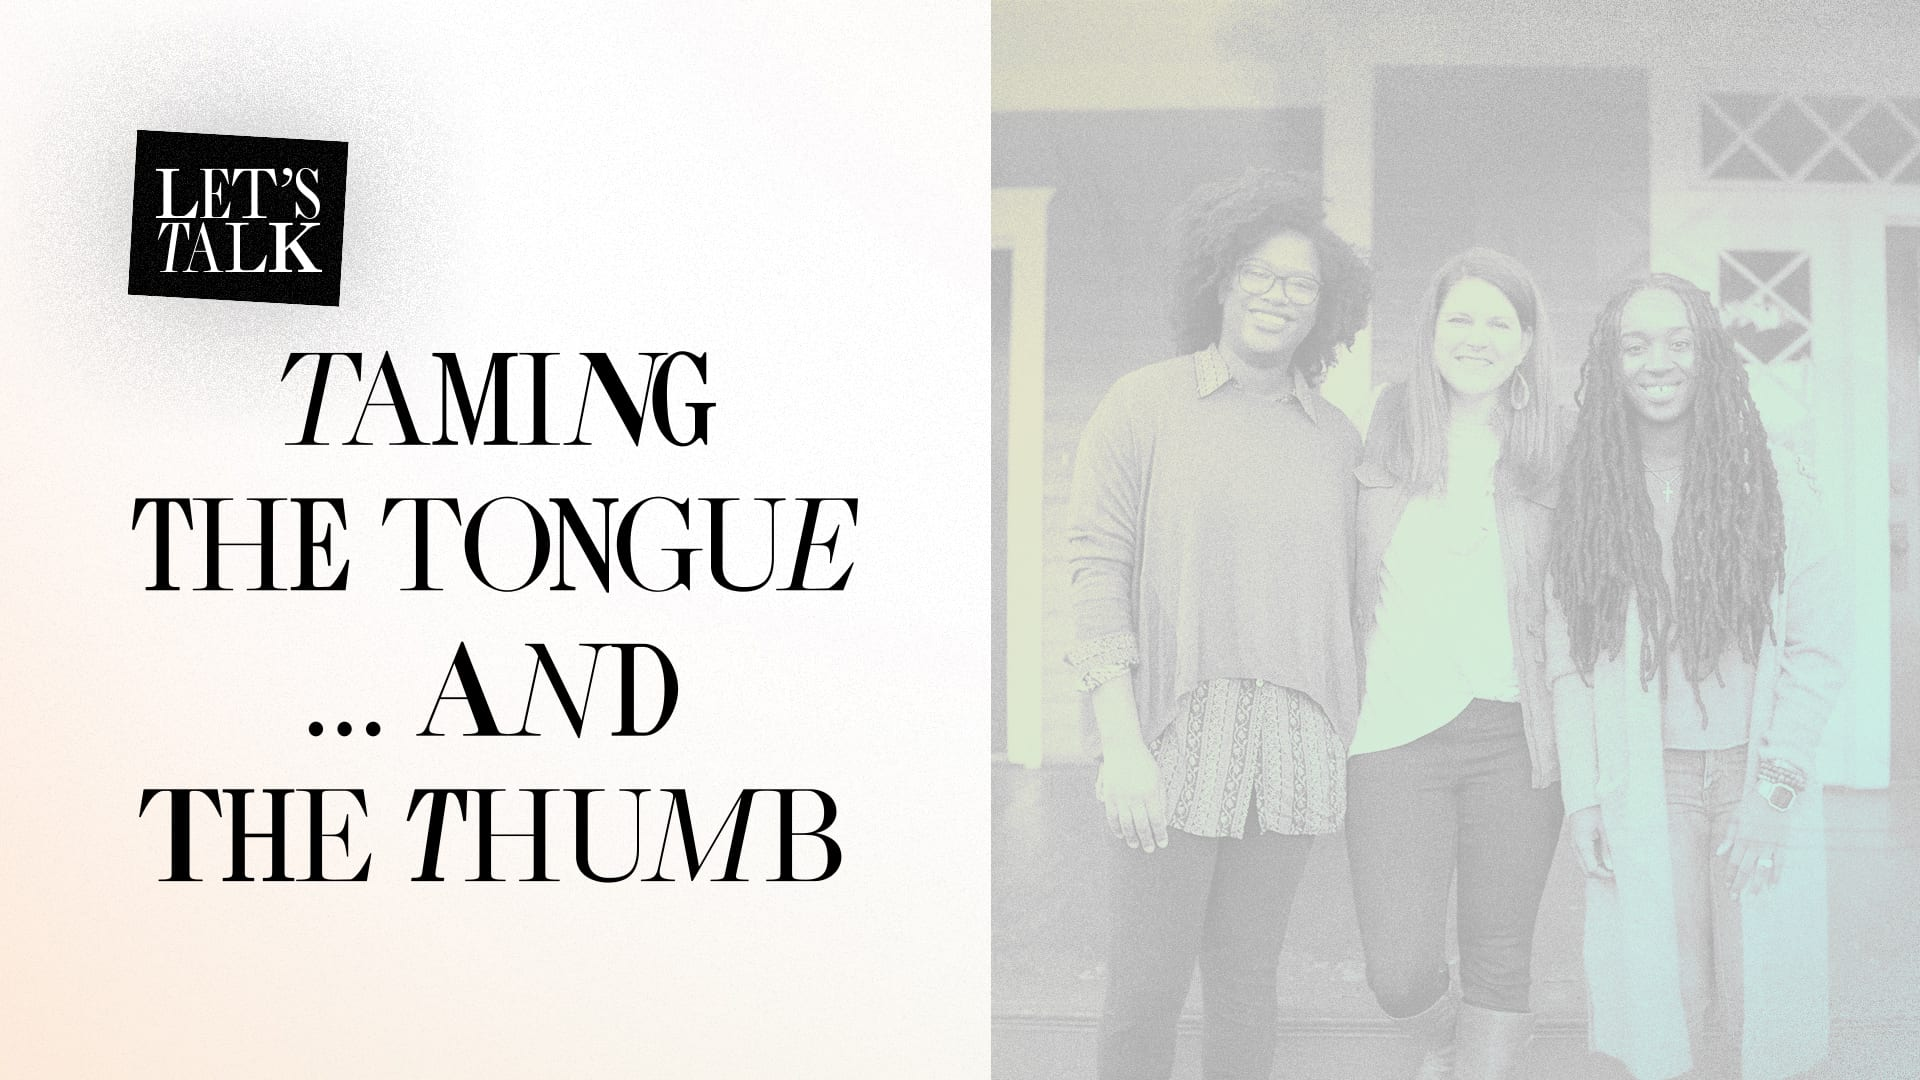 Let S Talk Taming The Tongue And The Thumb